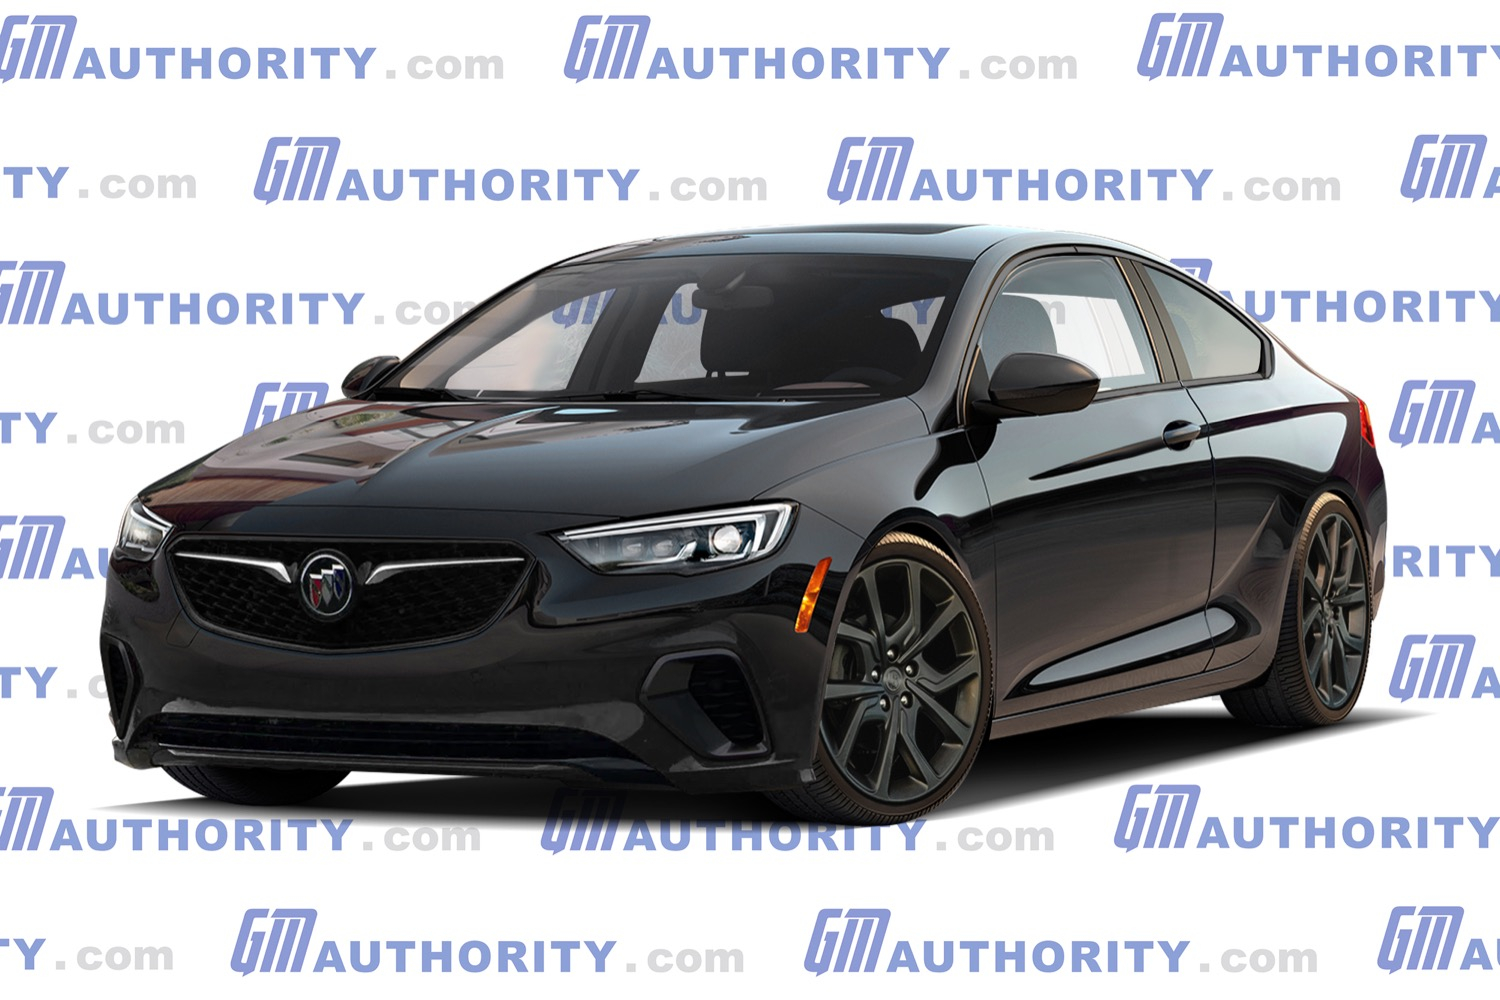 Modern Buick Regal Gnx Rendered | Gm Authority 2022 Buick Cascada Awd, Build And Price, Engine